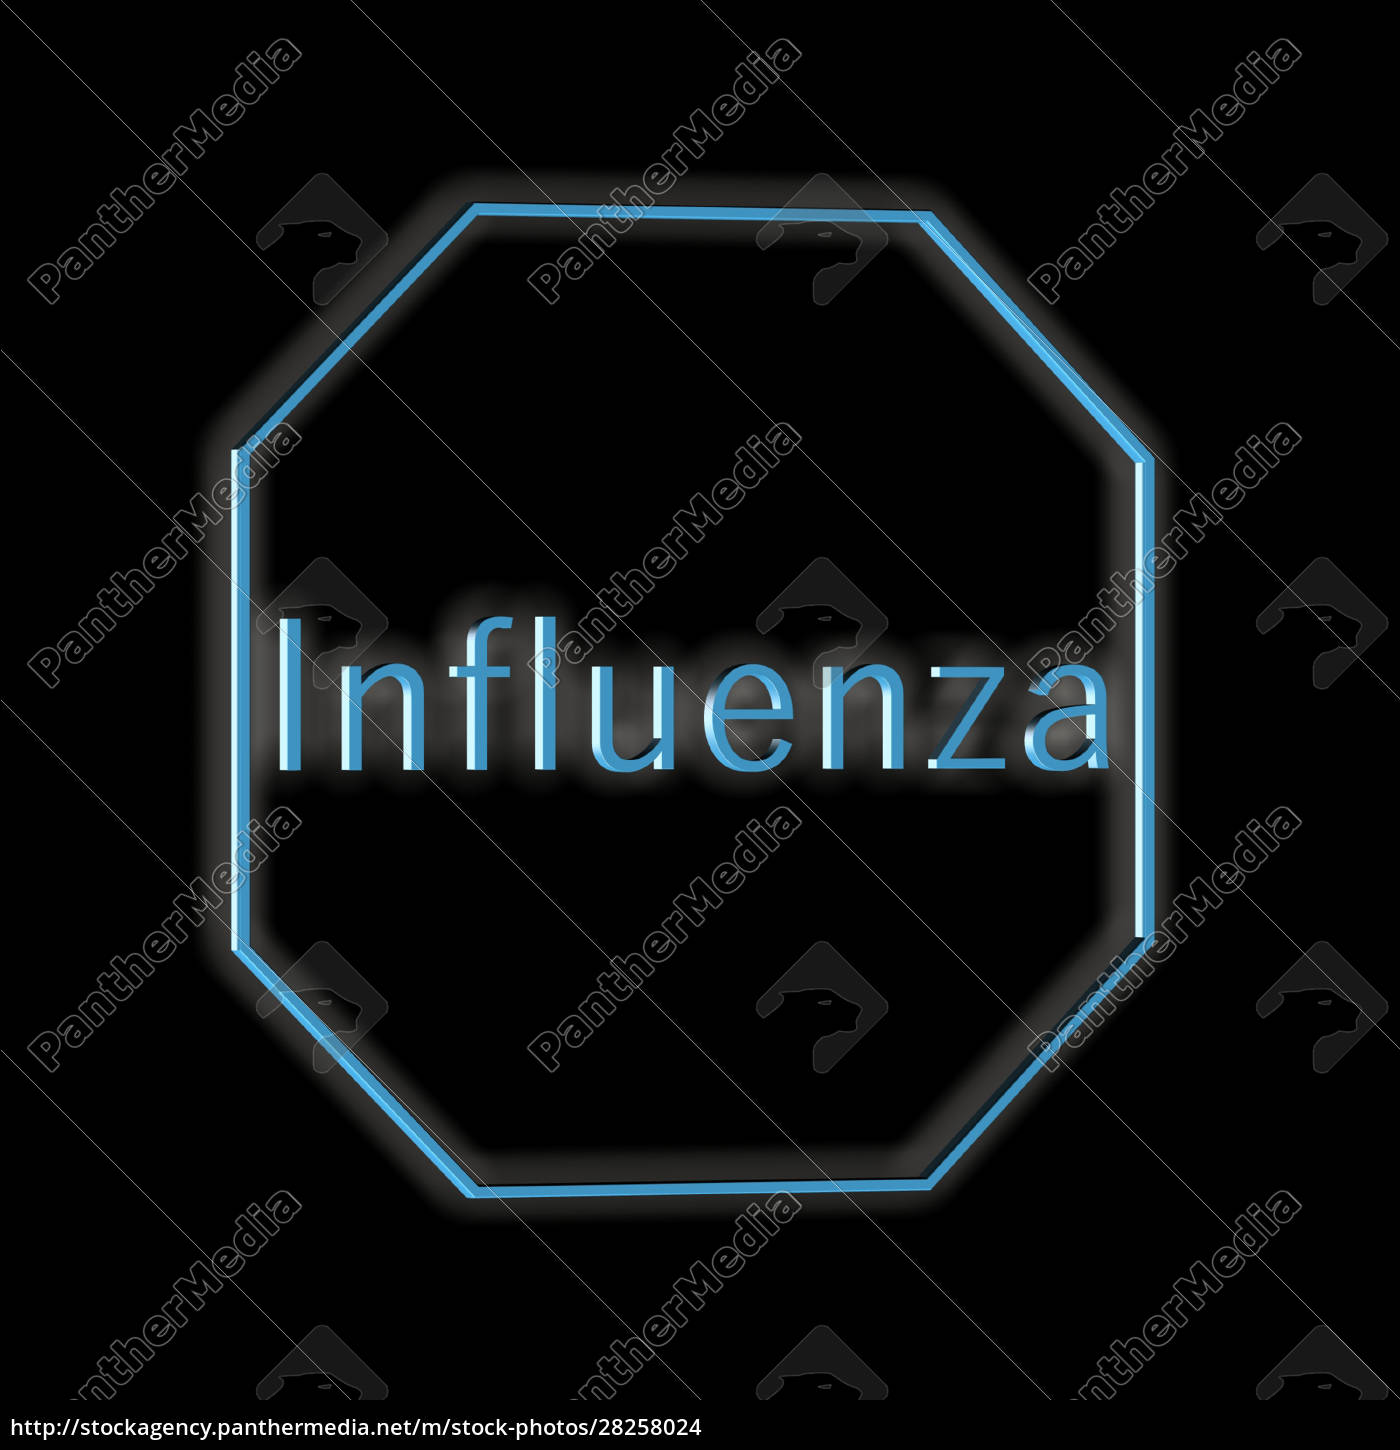 influenza, -, word, or, text, as - 28258024